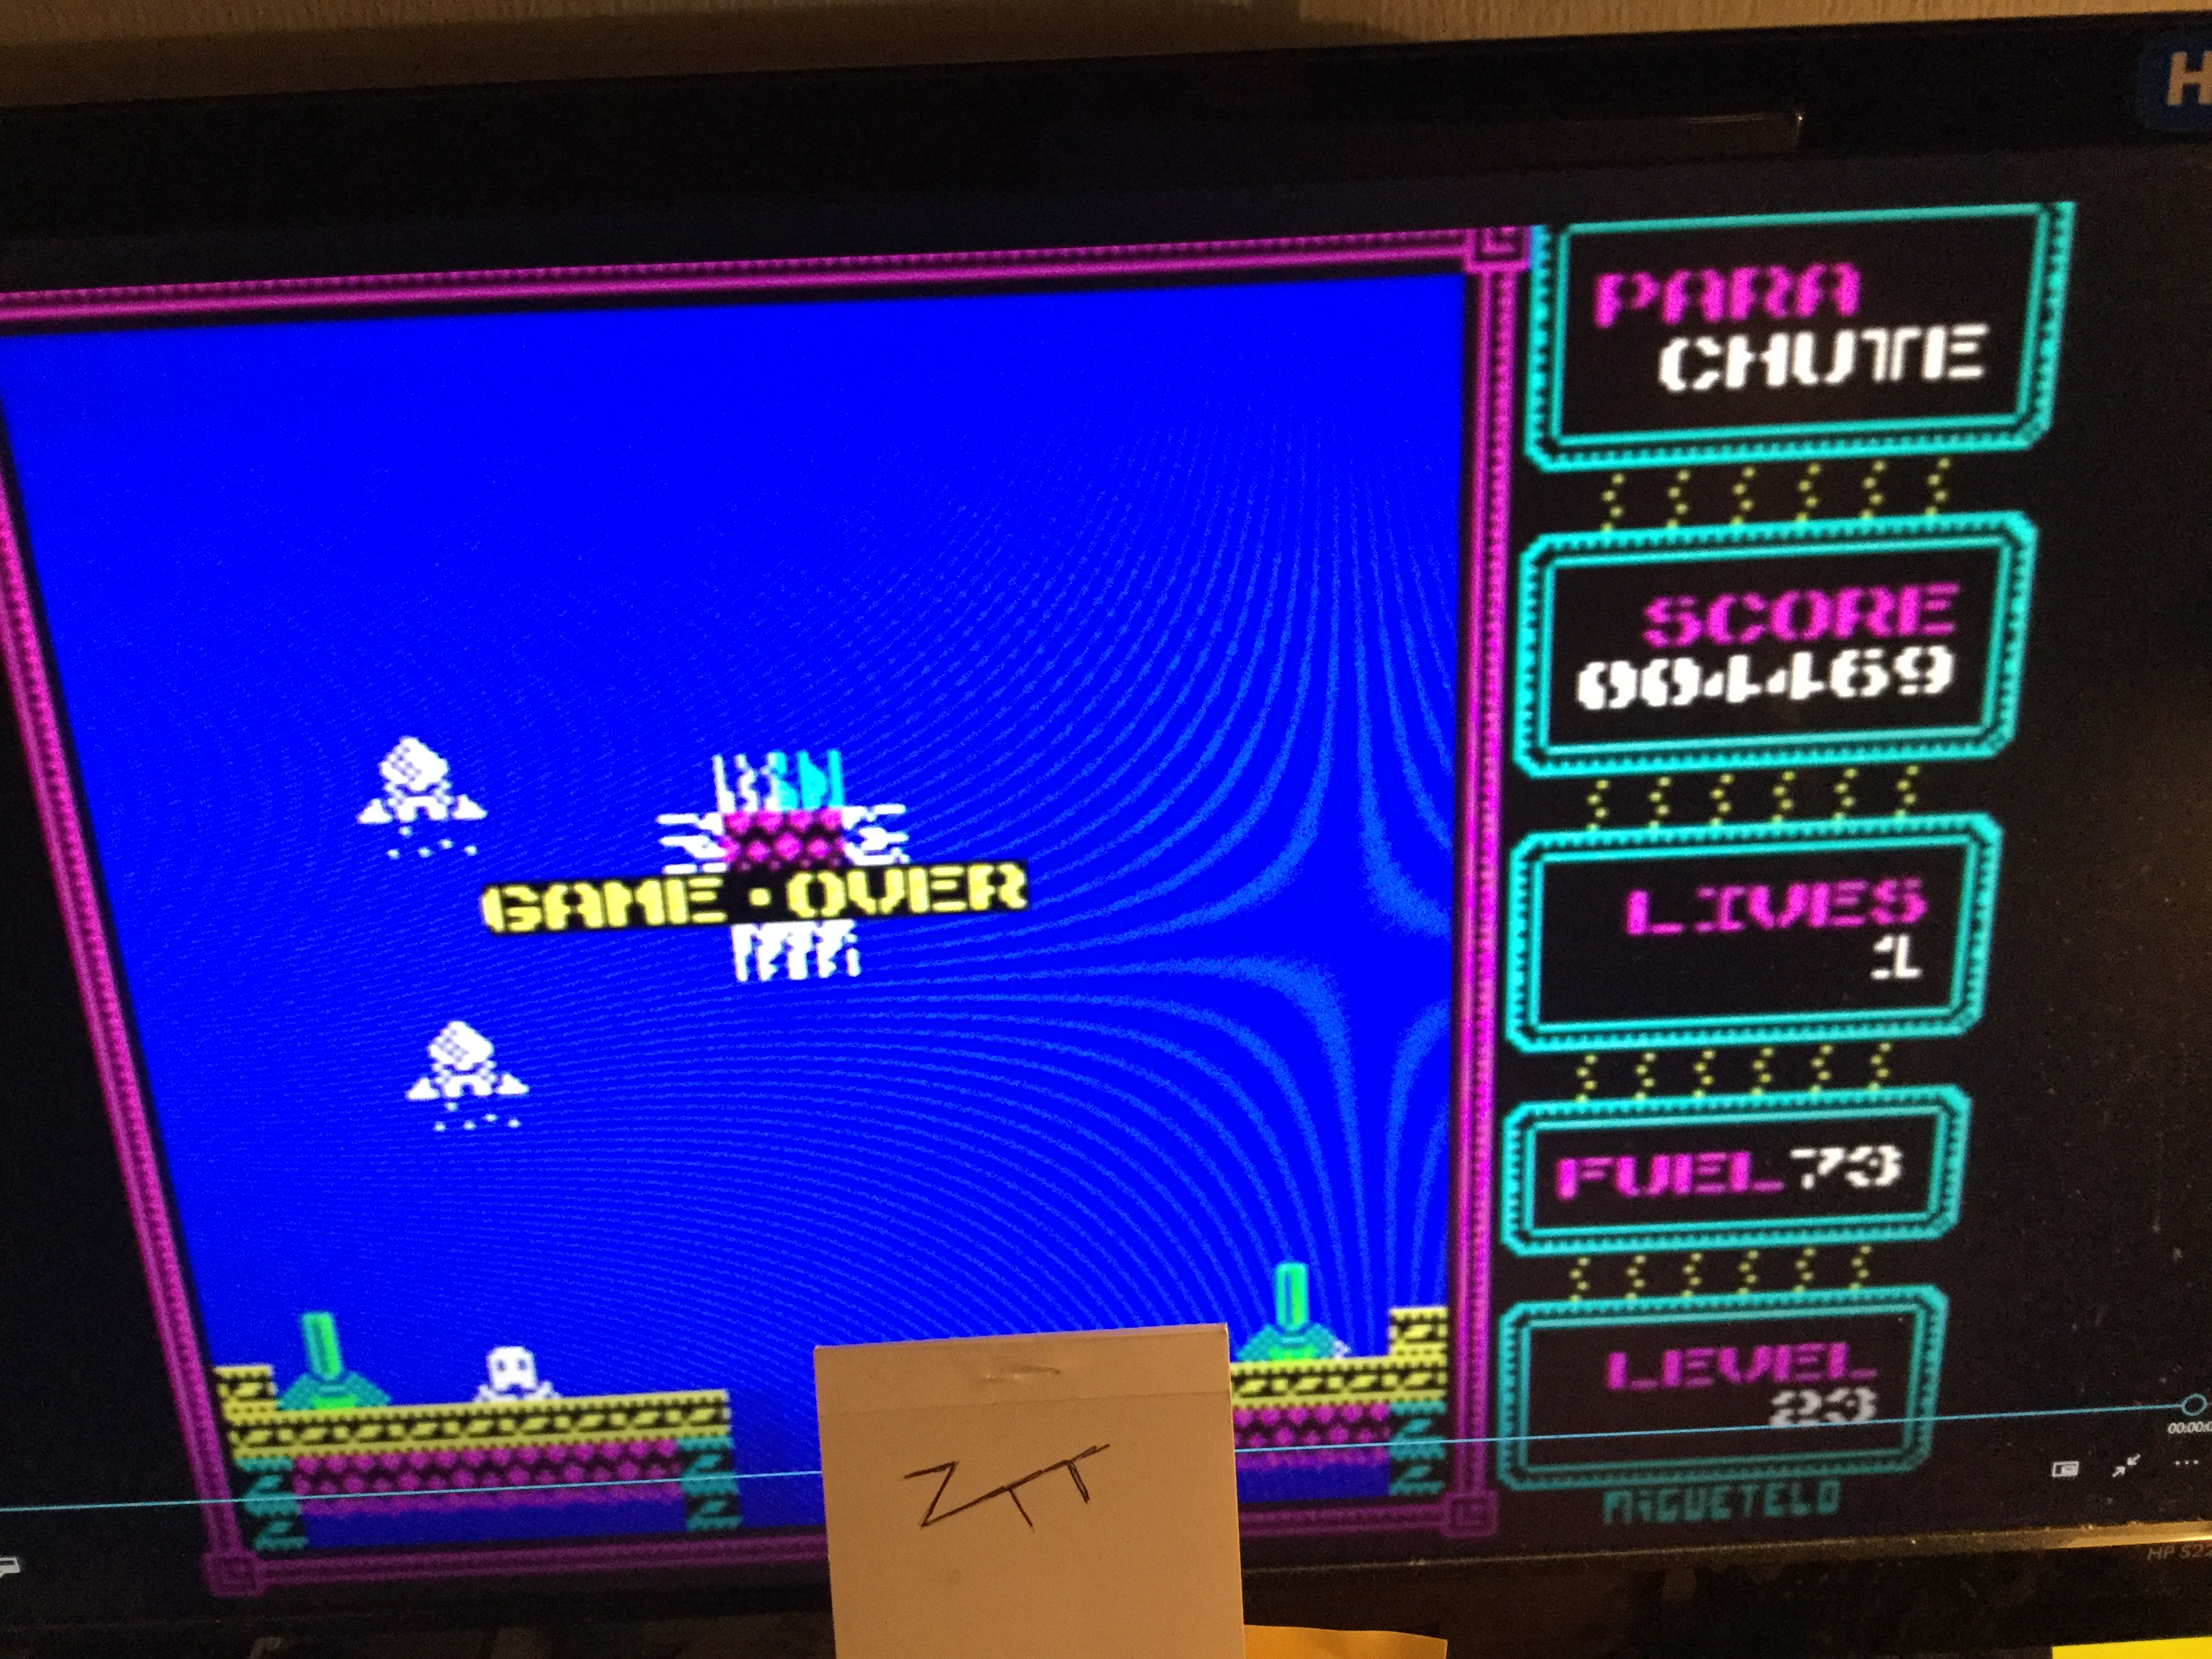 Frankie: Parachute [Miguetelo] (ZX Spectrum Emulated) 4,469 points on 2018-02-02 16:47:01